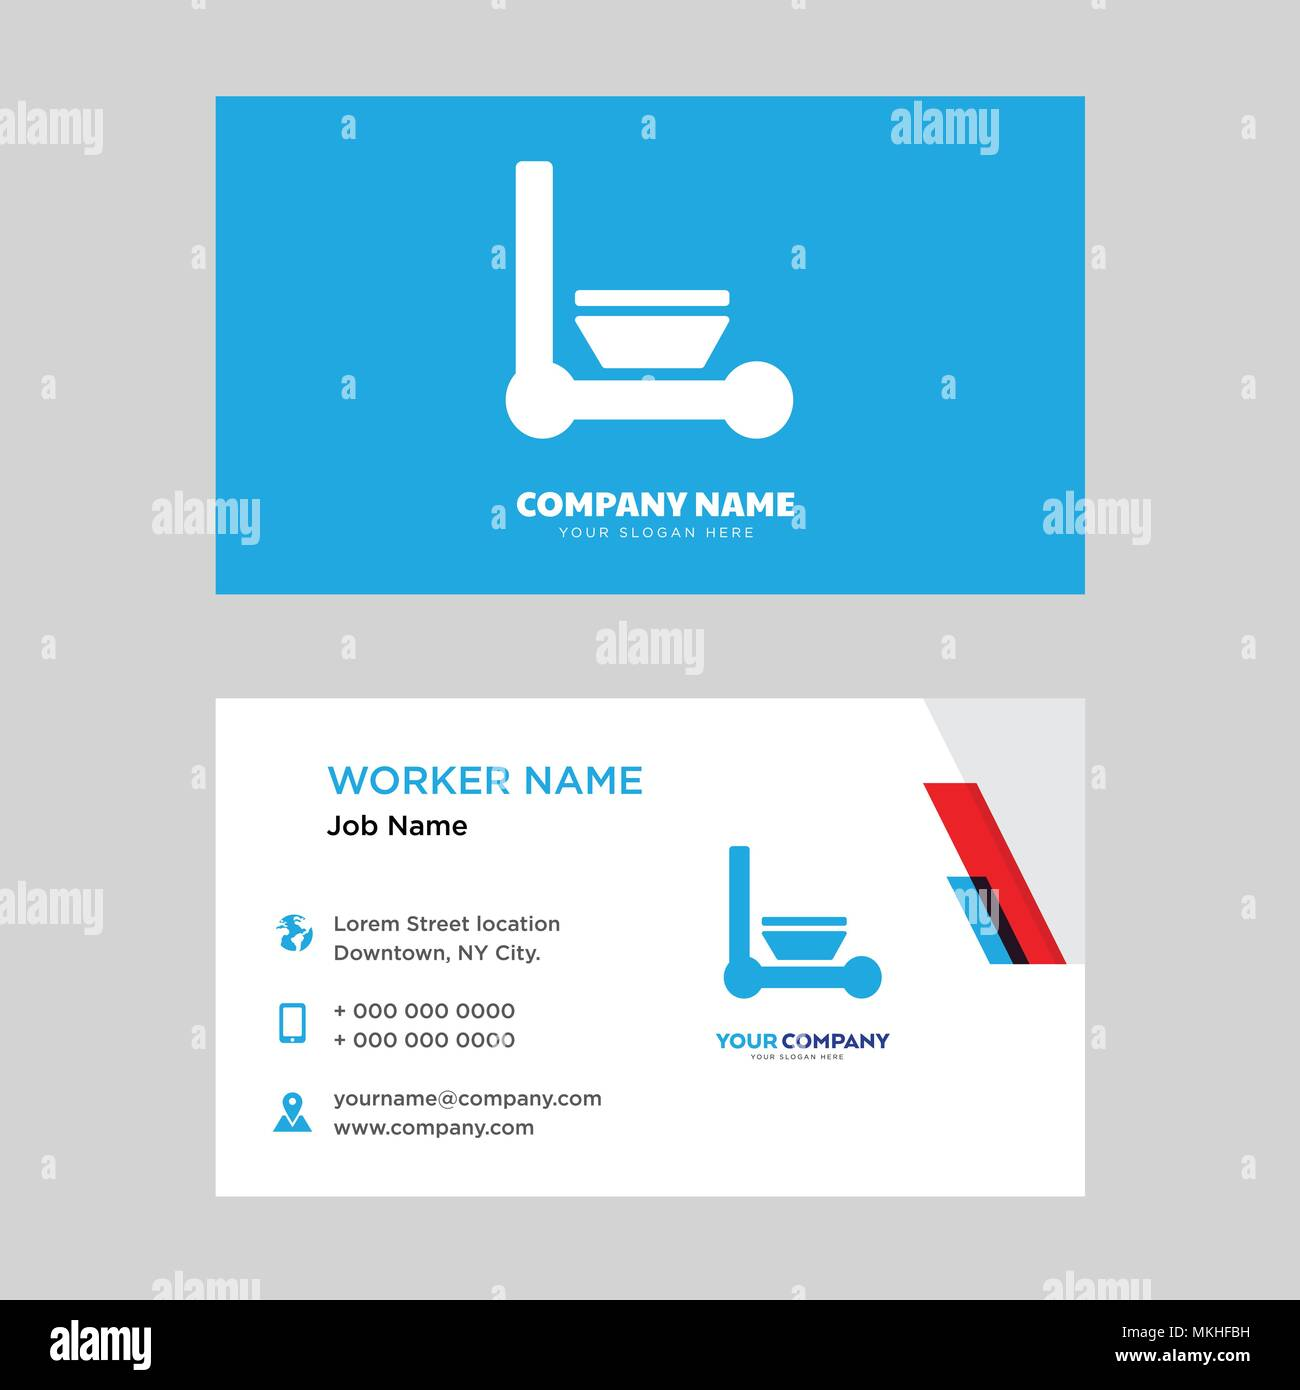 Cleaning business card design template, Visiting for your company ...